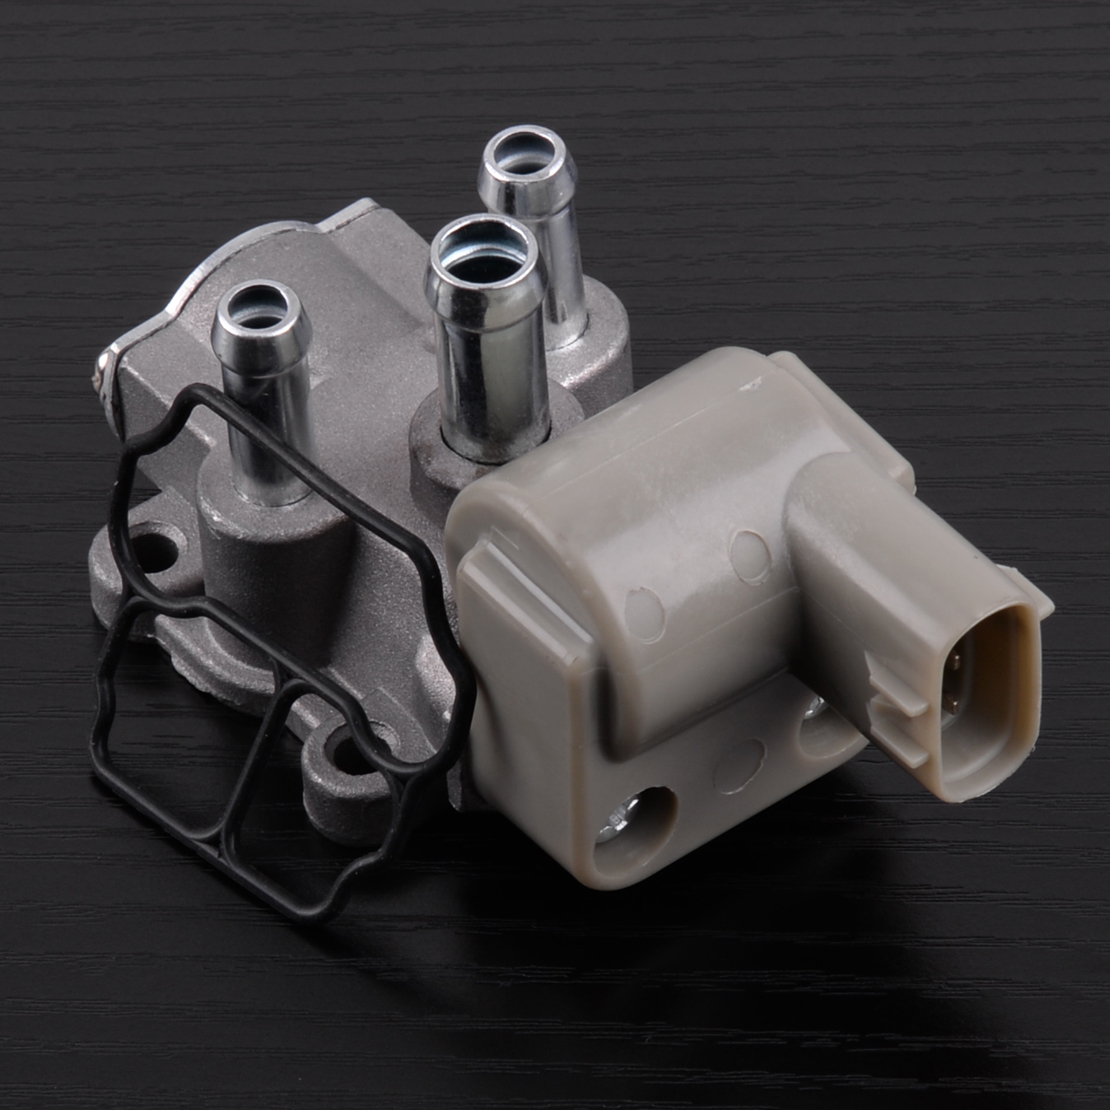 CITALL 22270-15010 Idle Air Control Valve Fit For Toyota Corolla 1.6L Geo Prizm 1993 1994 1995